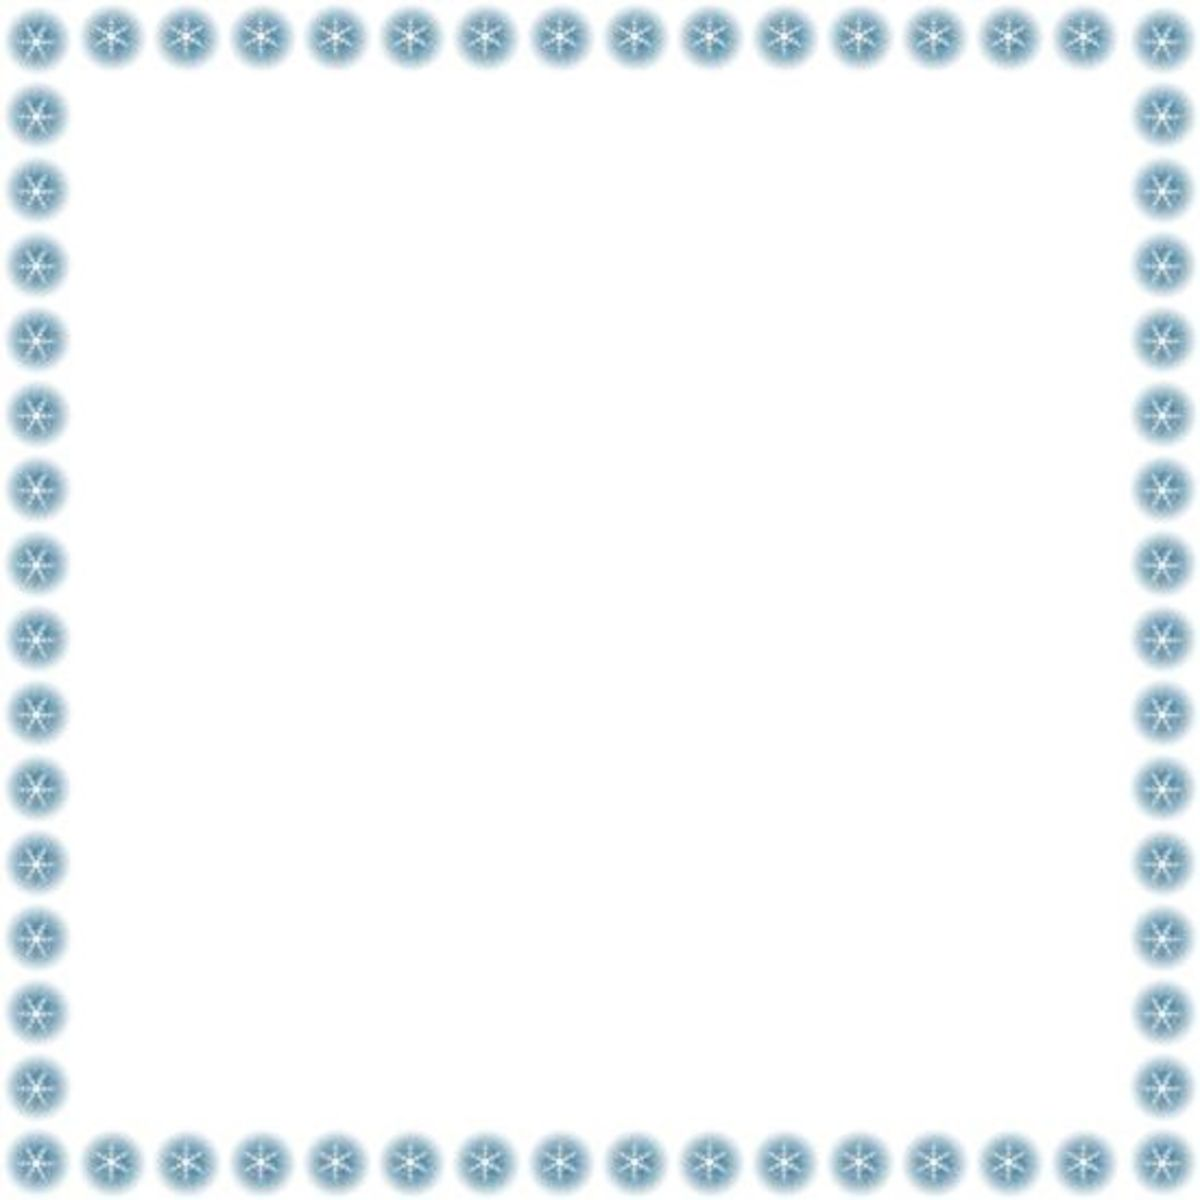 Free Snowflakes Clip Art Frame - Right Click Image & Save As